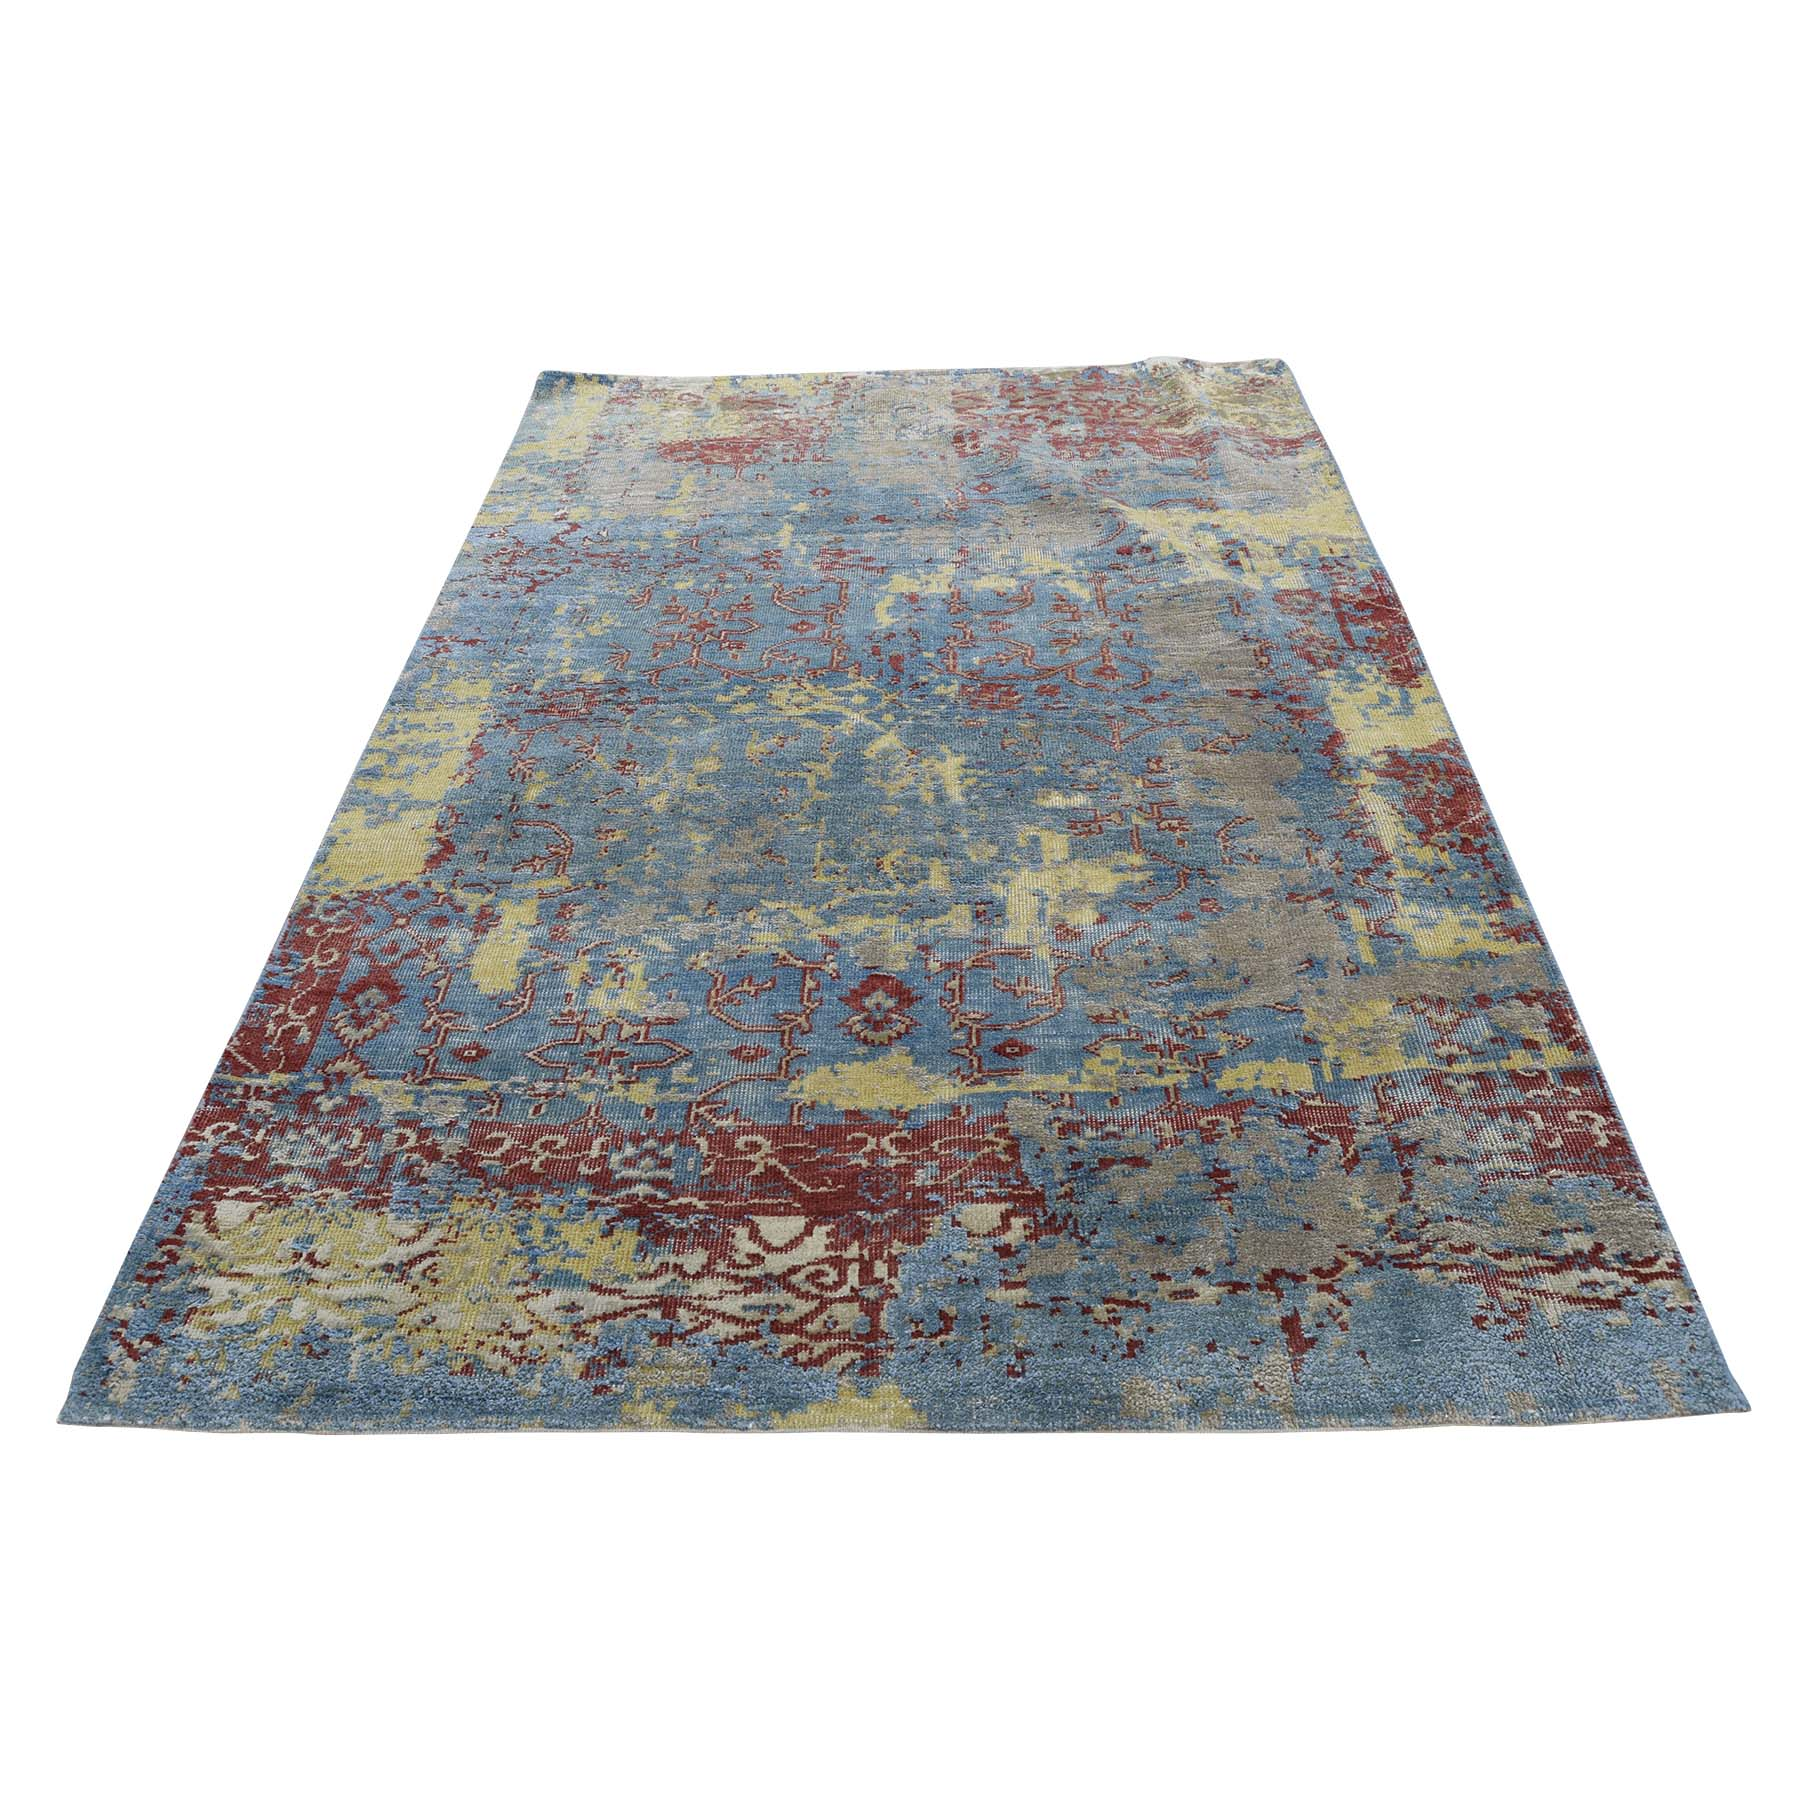 "3'10""X5'10"" Hand-Knotted Silk With Oxidized Wool Broken Design Rug moadac79"